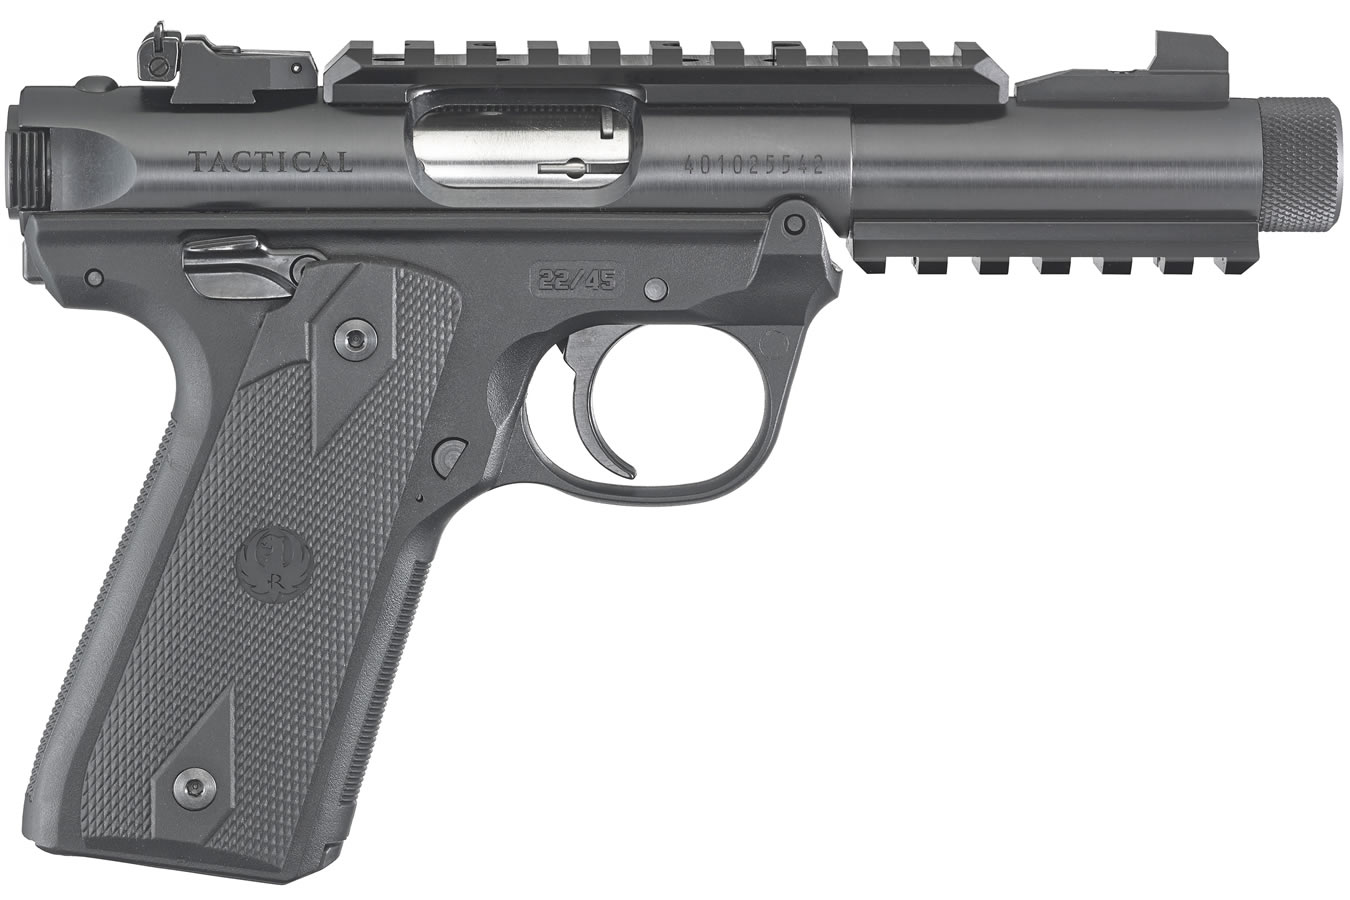 Ruger Mark Iv 2245 Tactical 22lr With Threaded Barrel Sportsmans